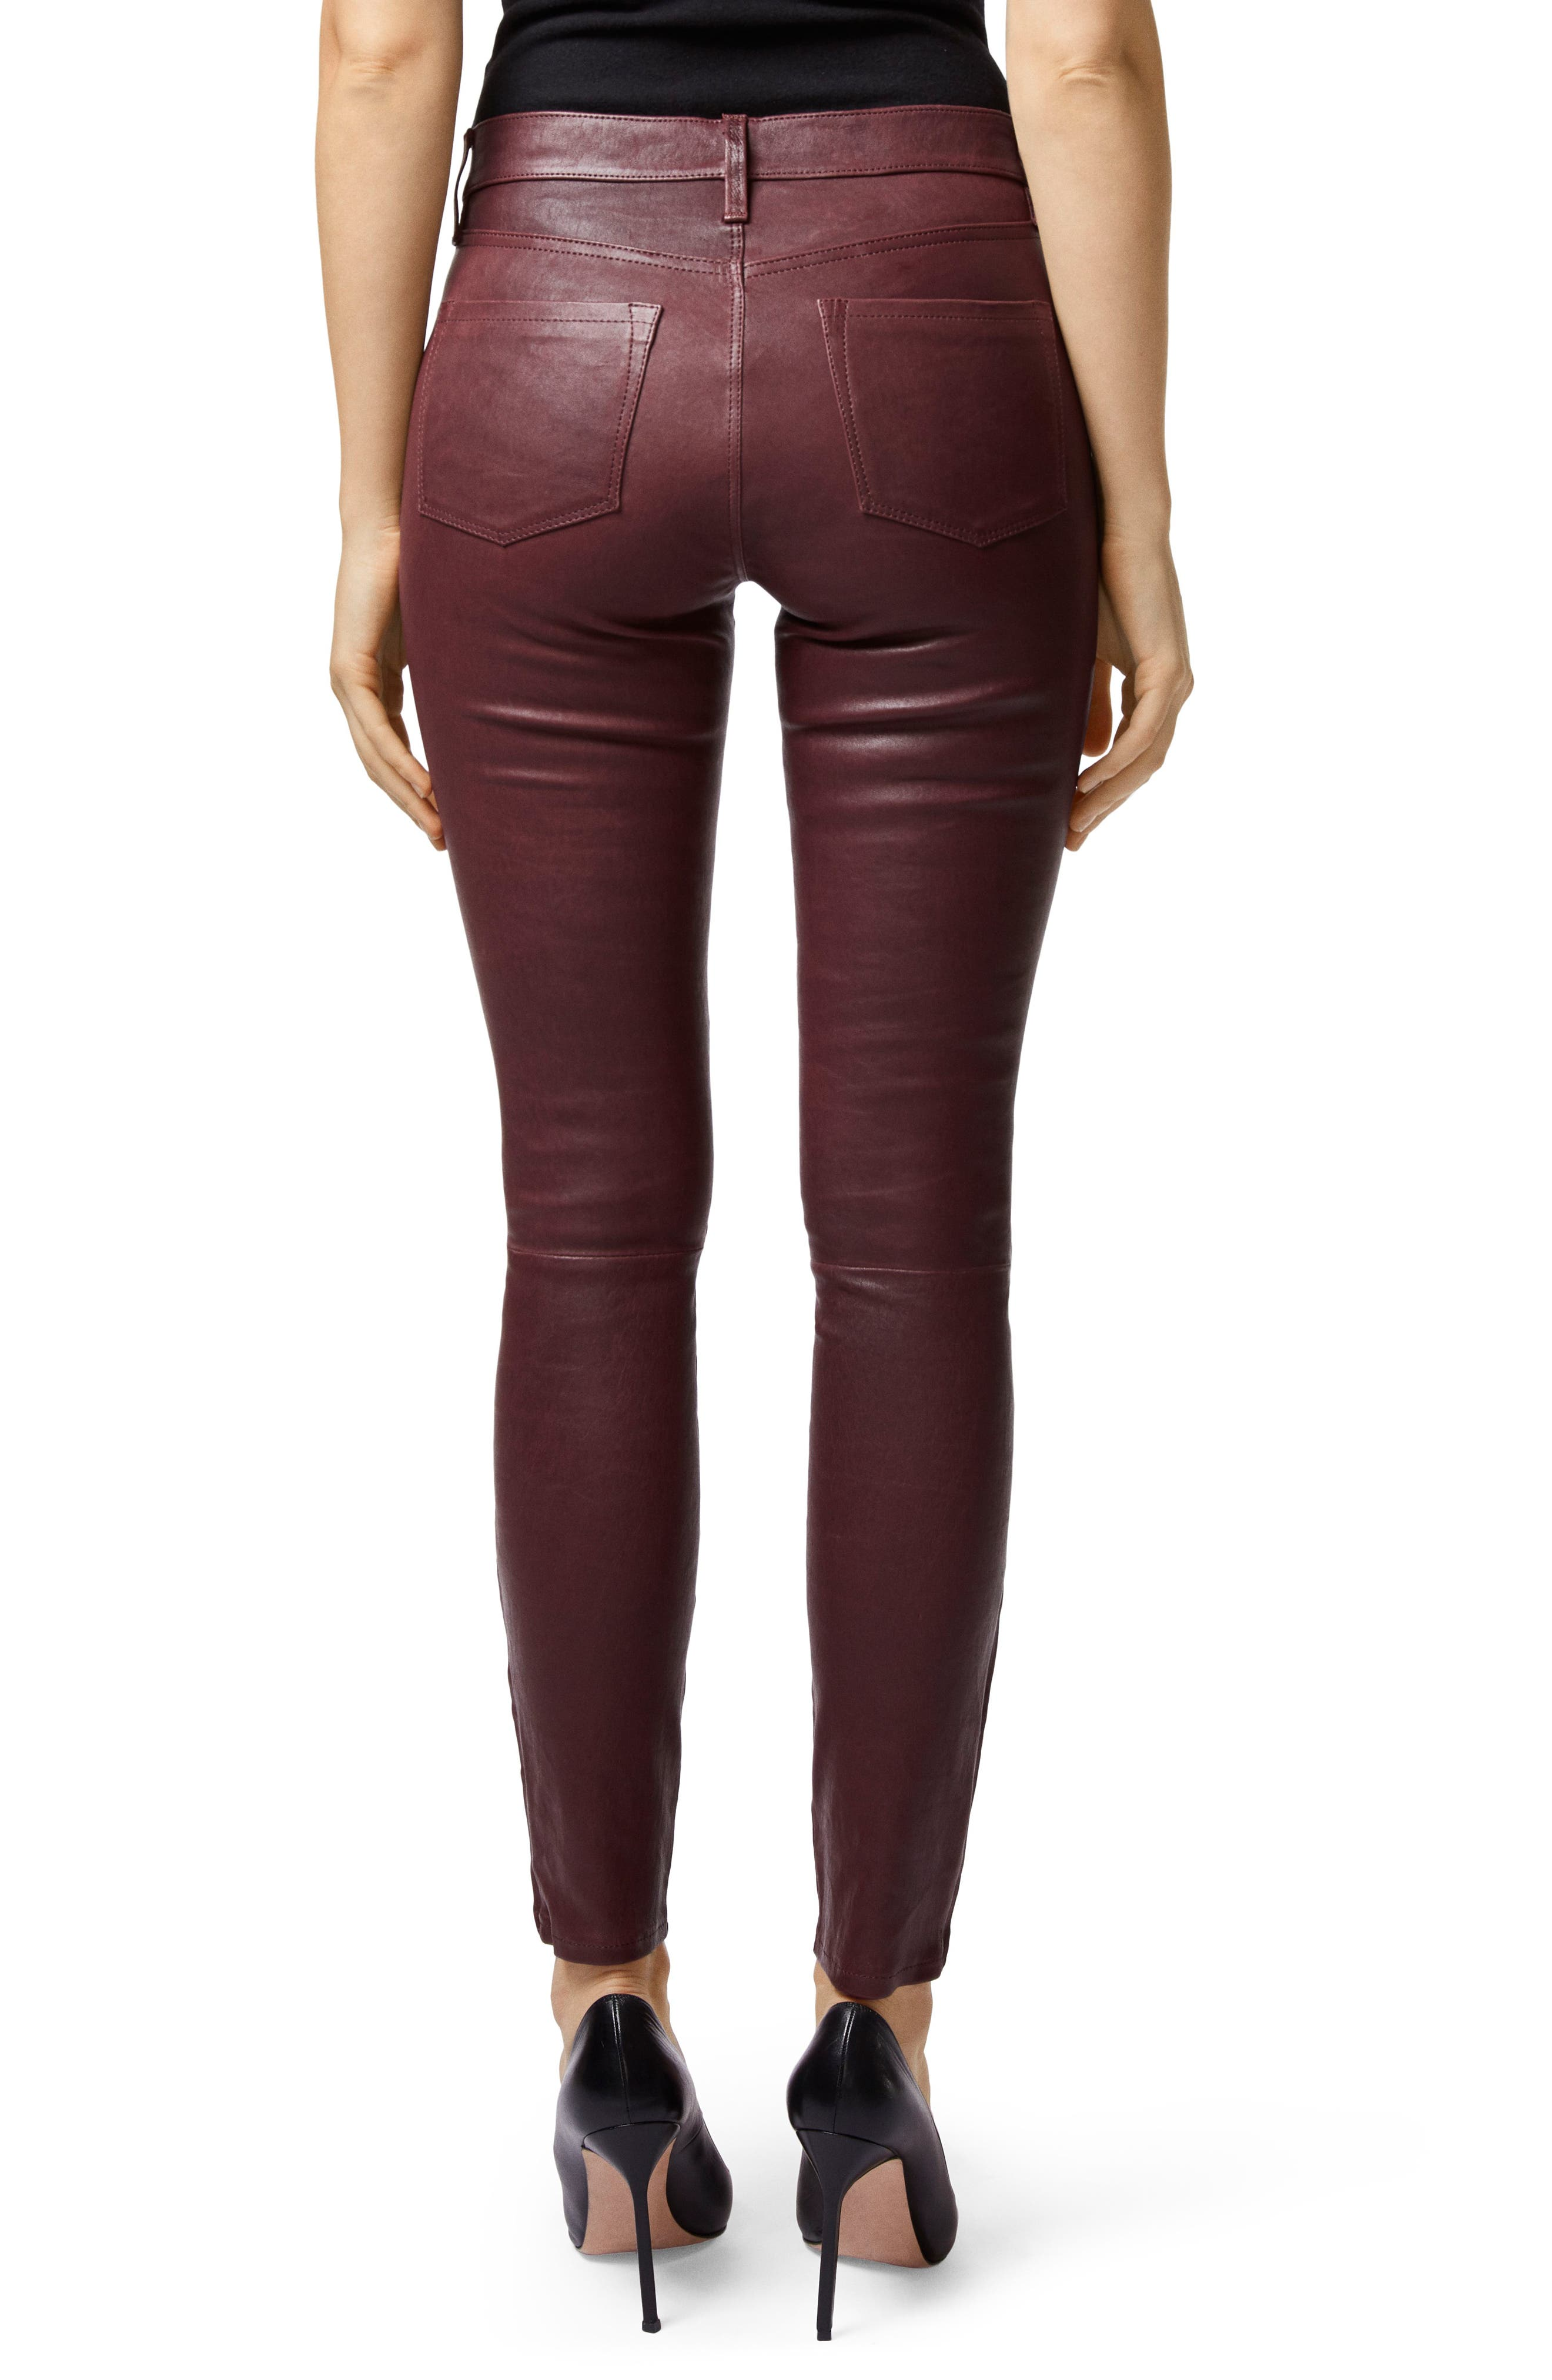 '8001' Lambskin Leather Pants,                             Alternate thumbnail 2, color,                             510